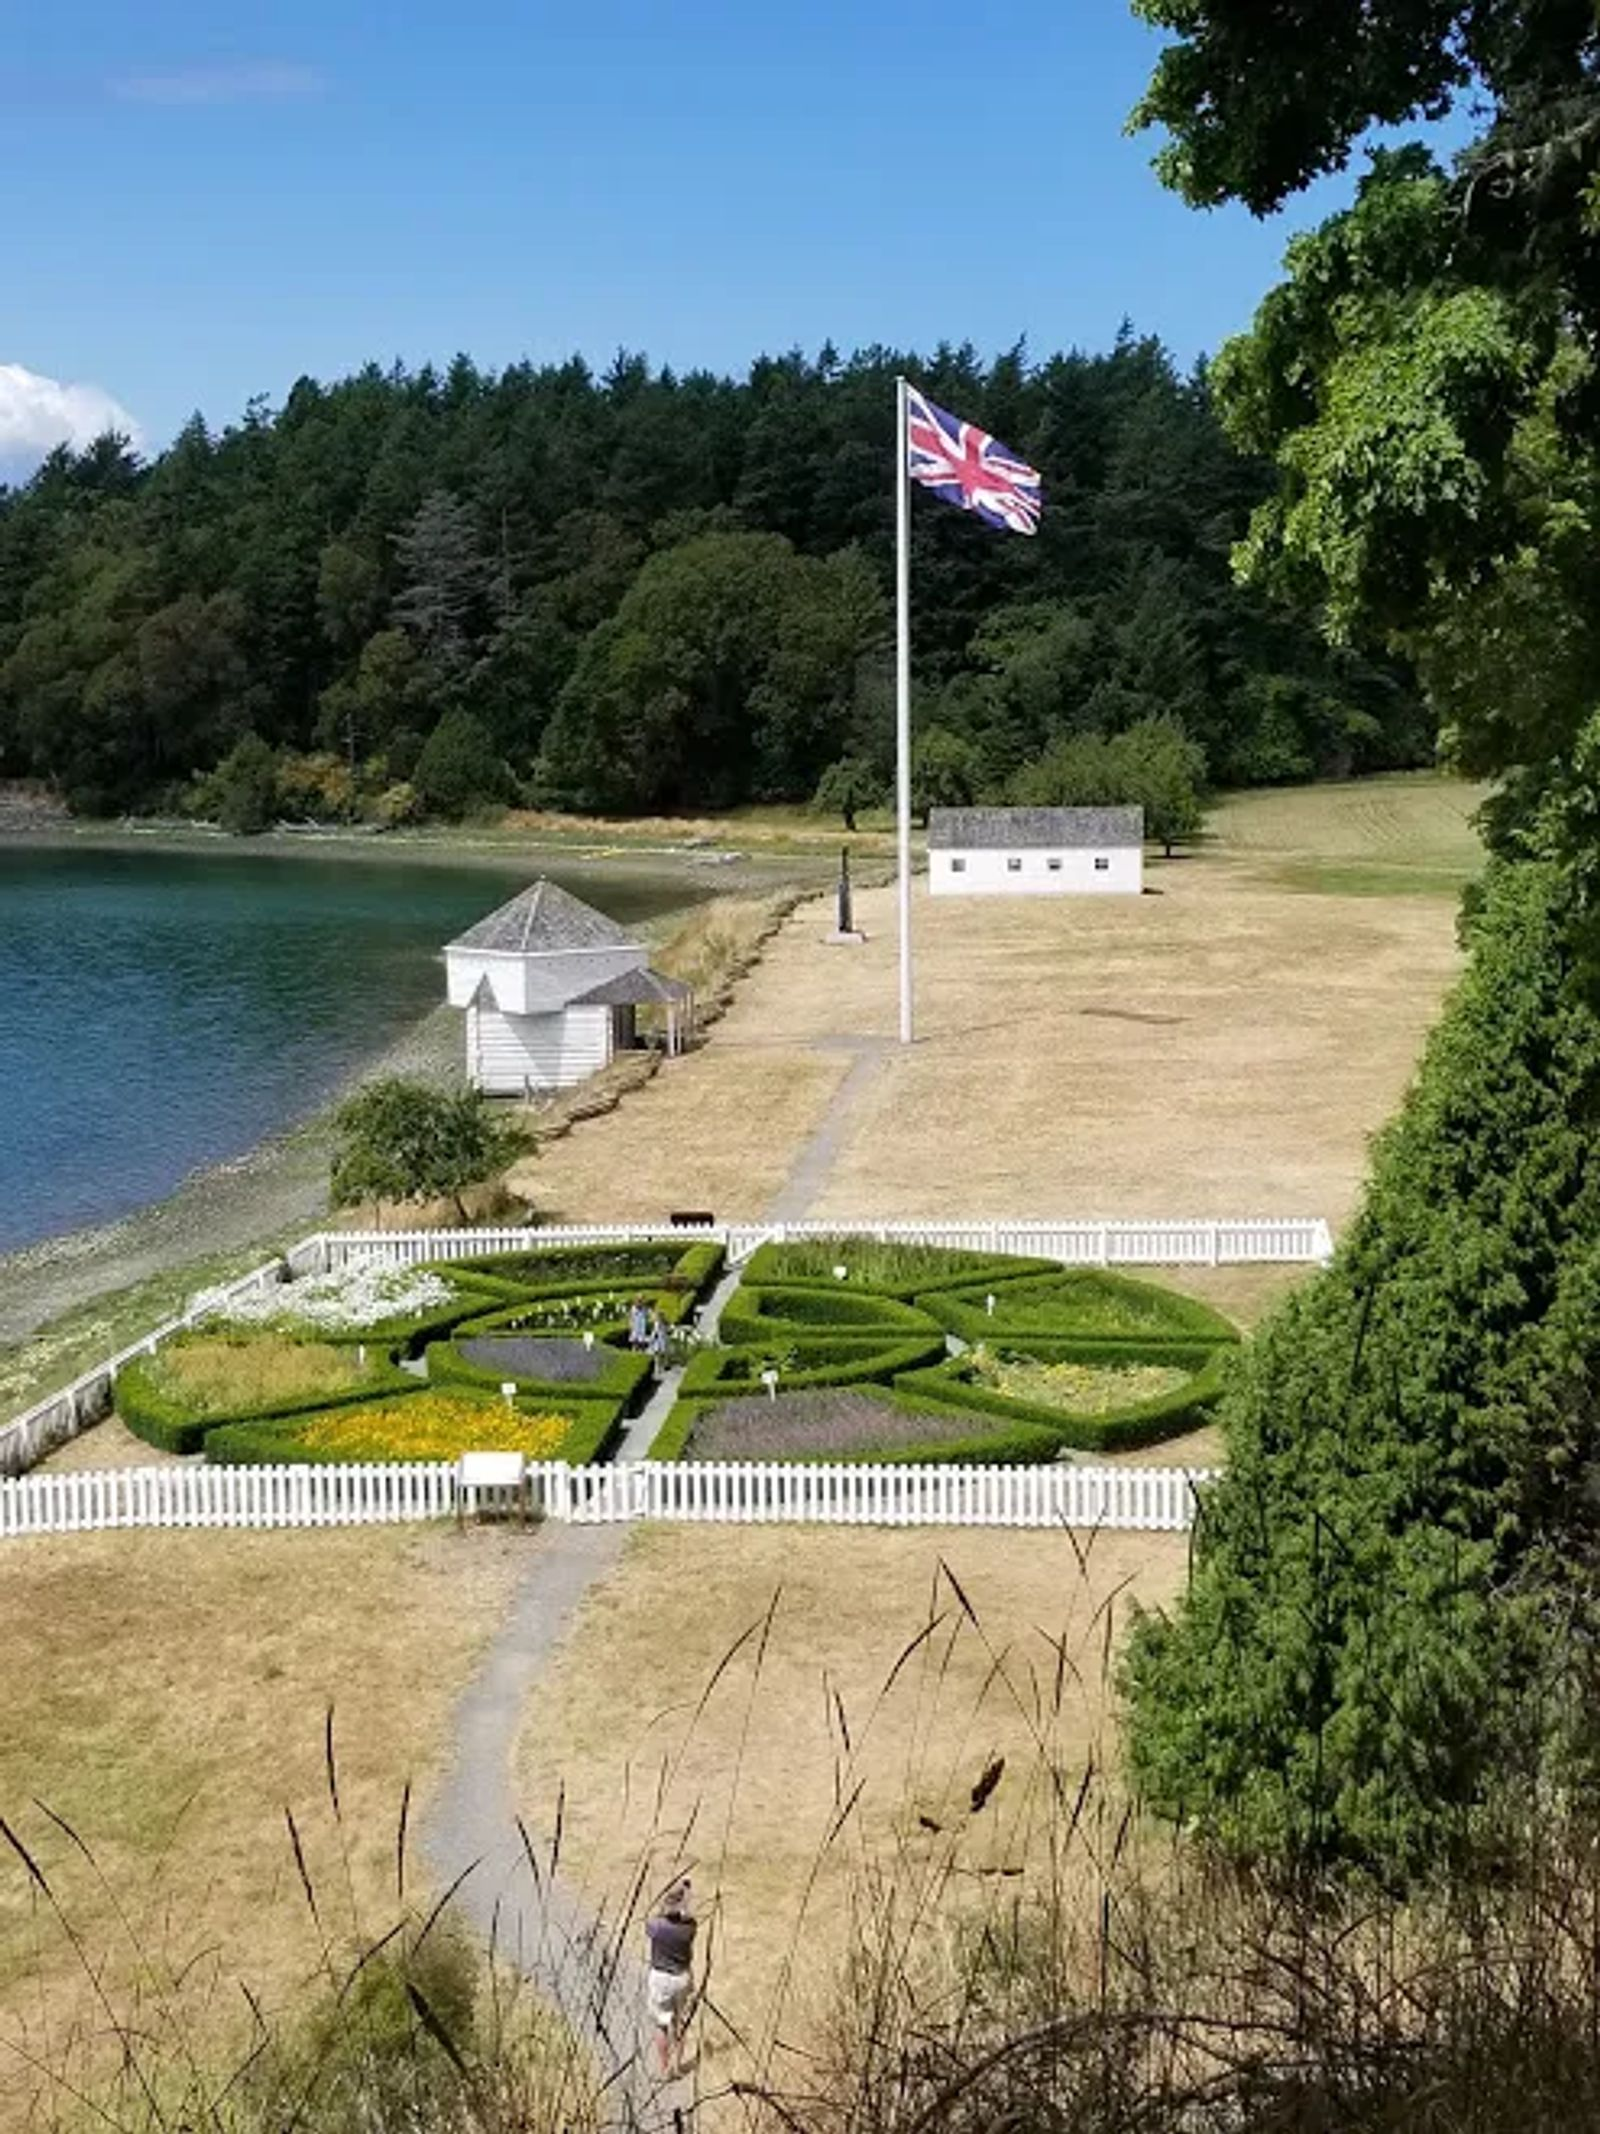 Photo of the British flag flying in a U.S. National Park, on San Juan Island, Washington